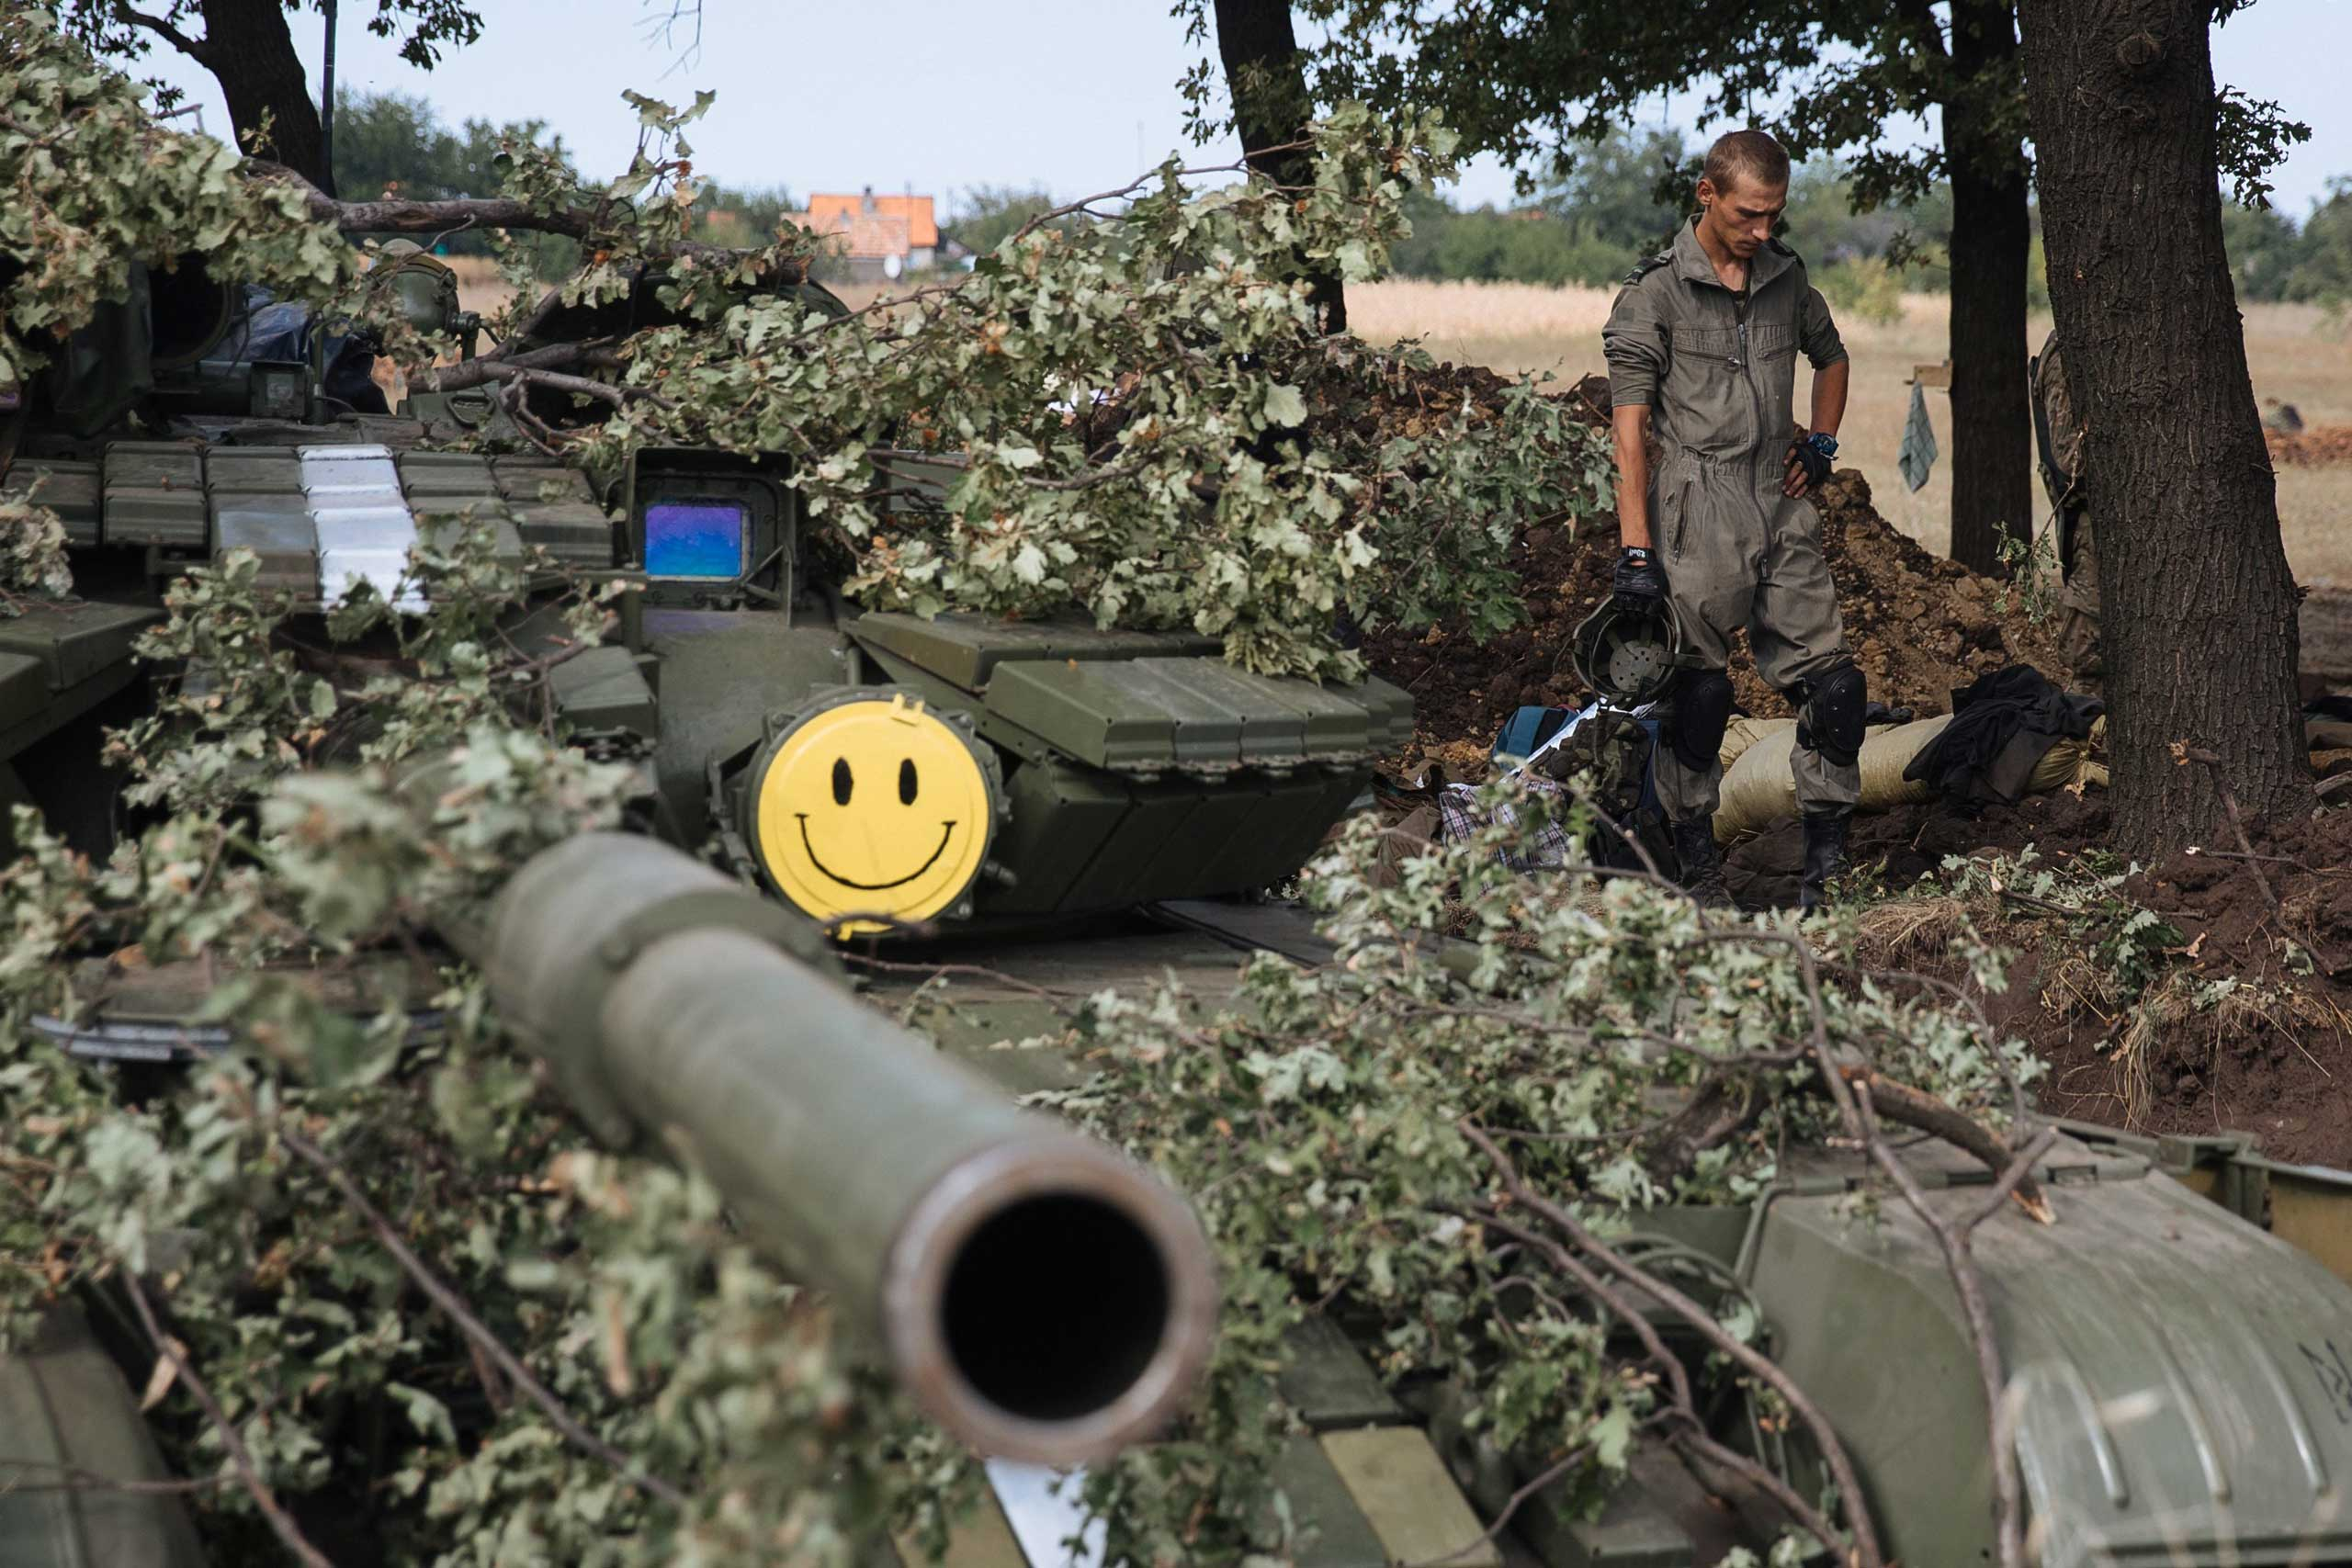 Ukrainian fighters partly wearing non-official uniforms stands next to a tank in a military camp based on a front line near Pervomaysk city of Lugansk region, Ukraine on Sept 12, 2014.